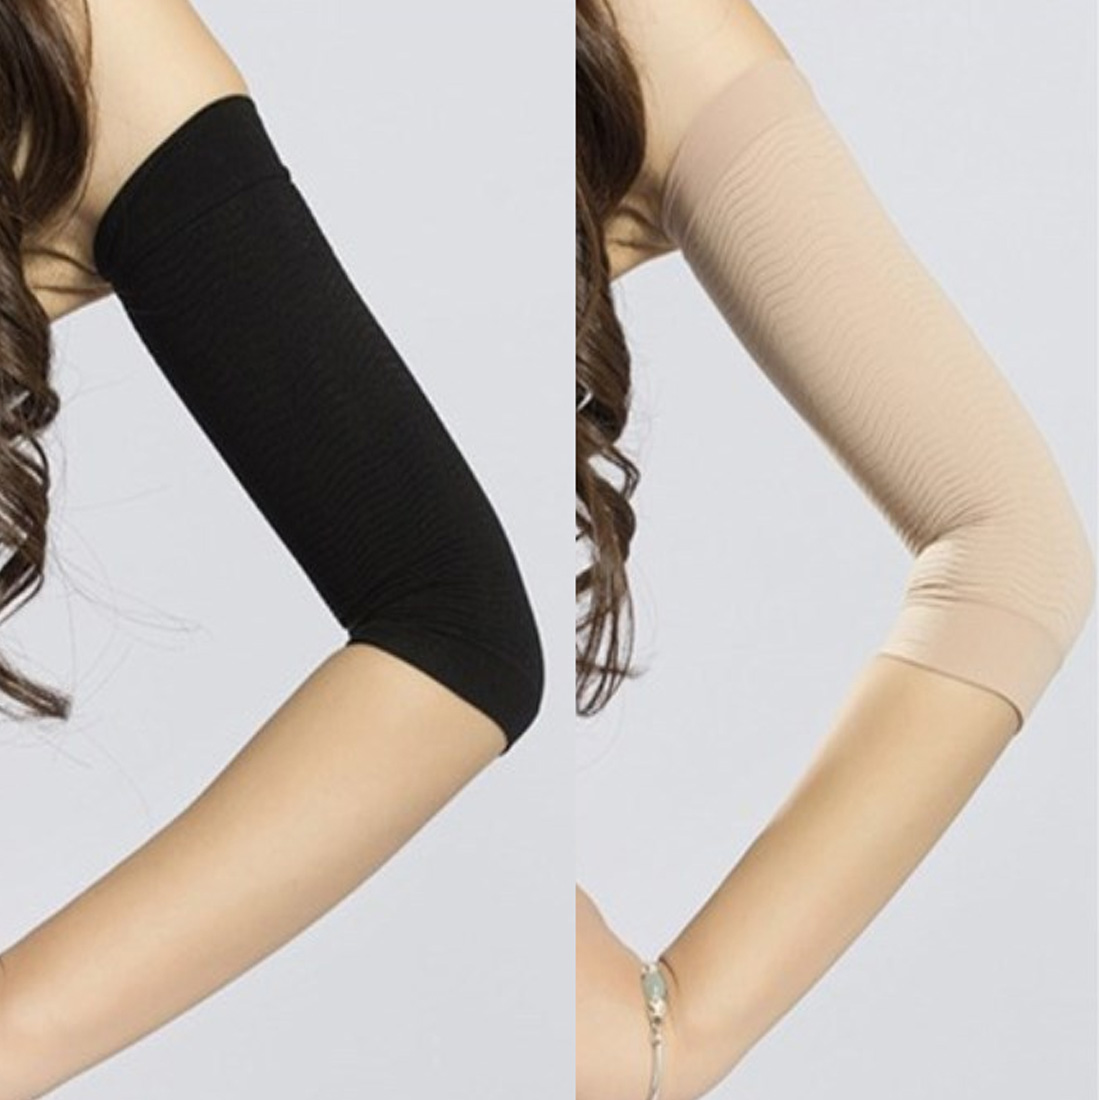 Massager Sleeve Slimming Wraps Arm Weight Loss Fat Burning Wrap Bands 2Pcs Weight Loss Calories Off Slim Slimming Arm Shaper